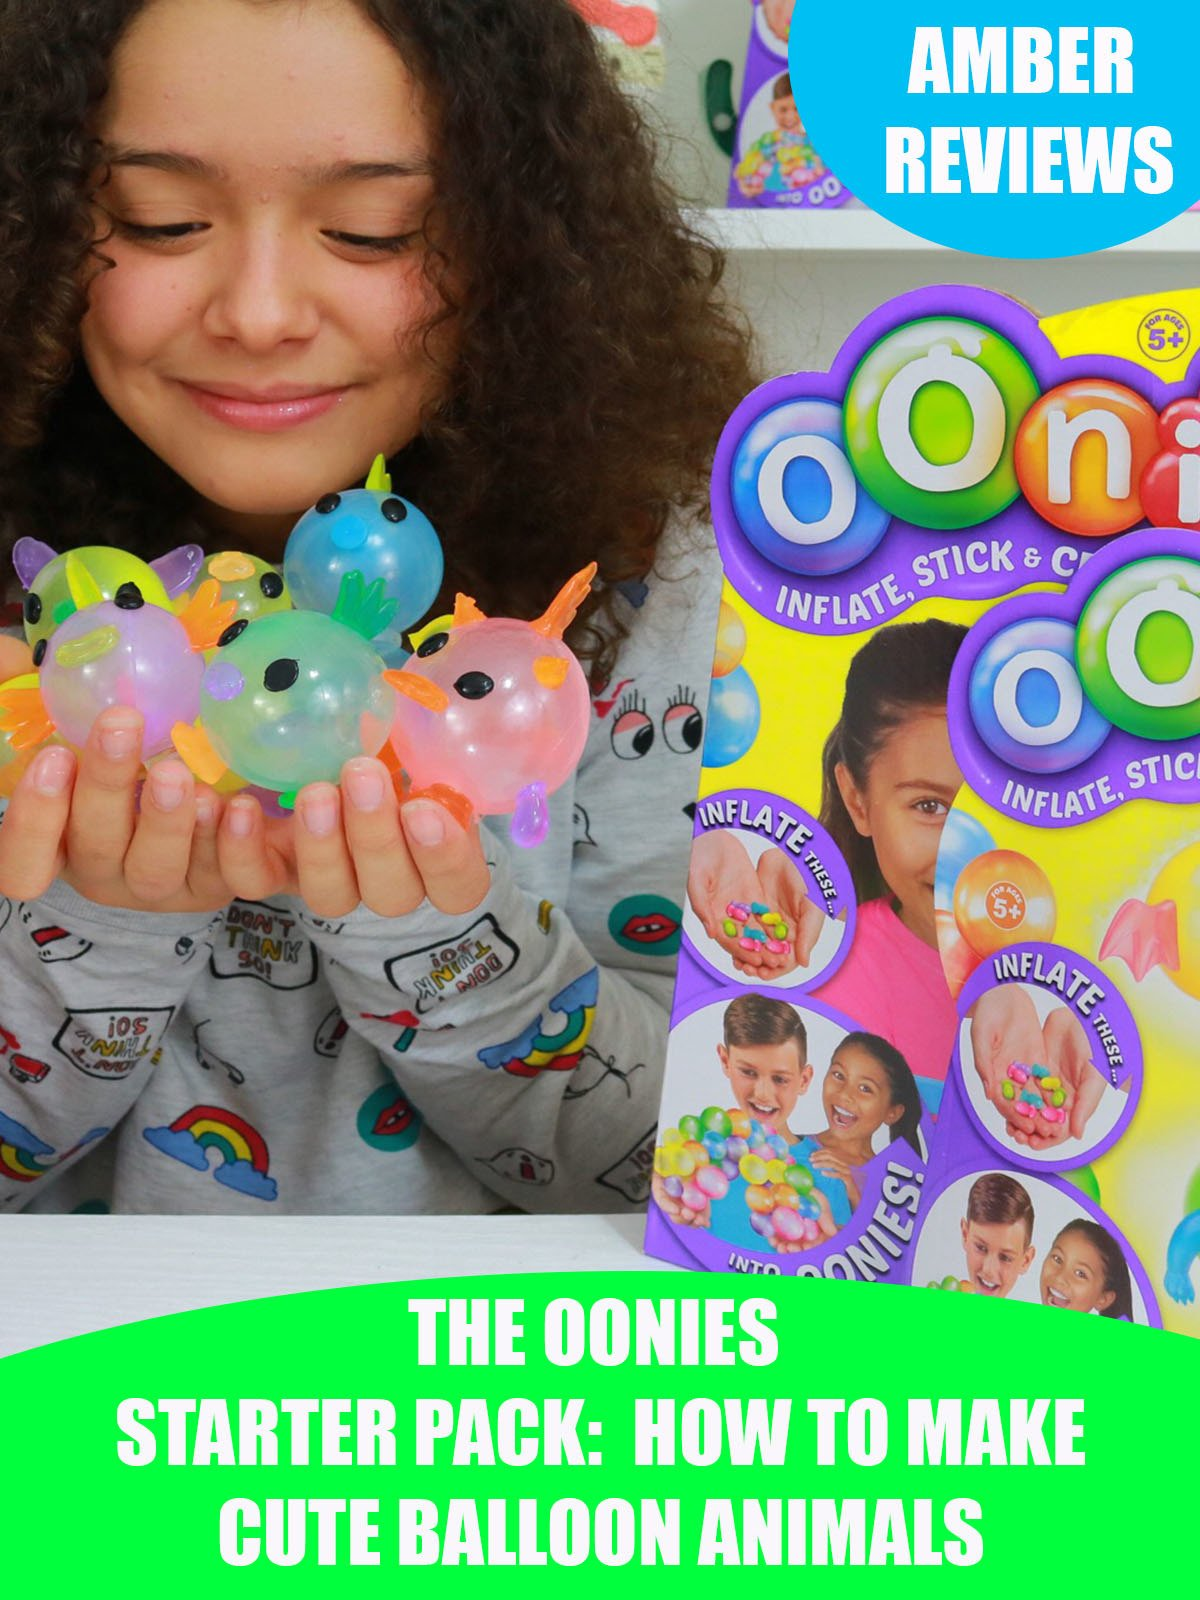 Amber Reviews Oonies Starter Pack How to Make Cute Balloon Animals